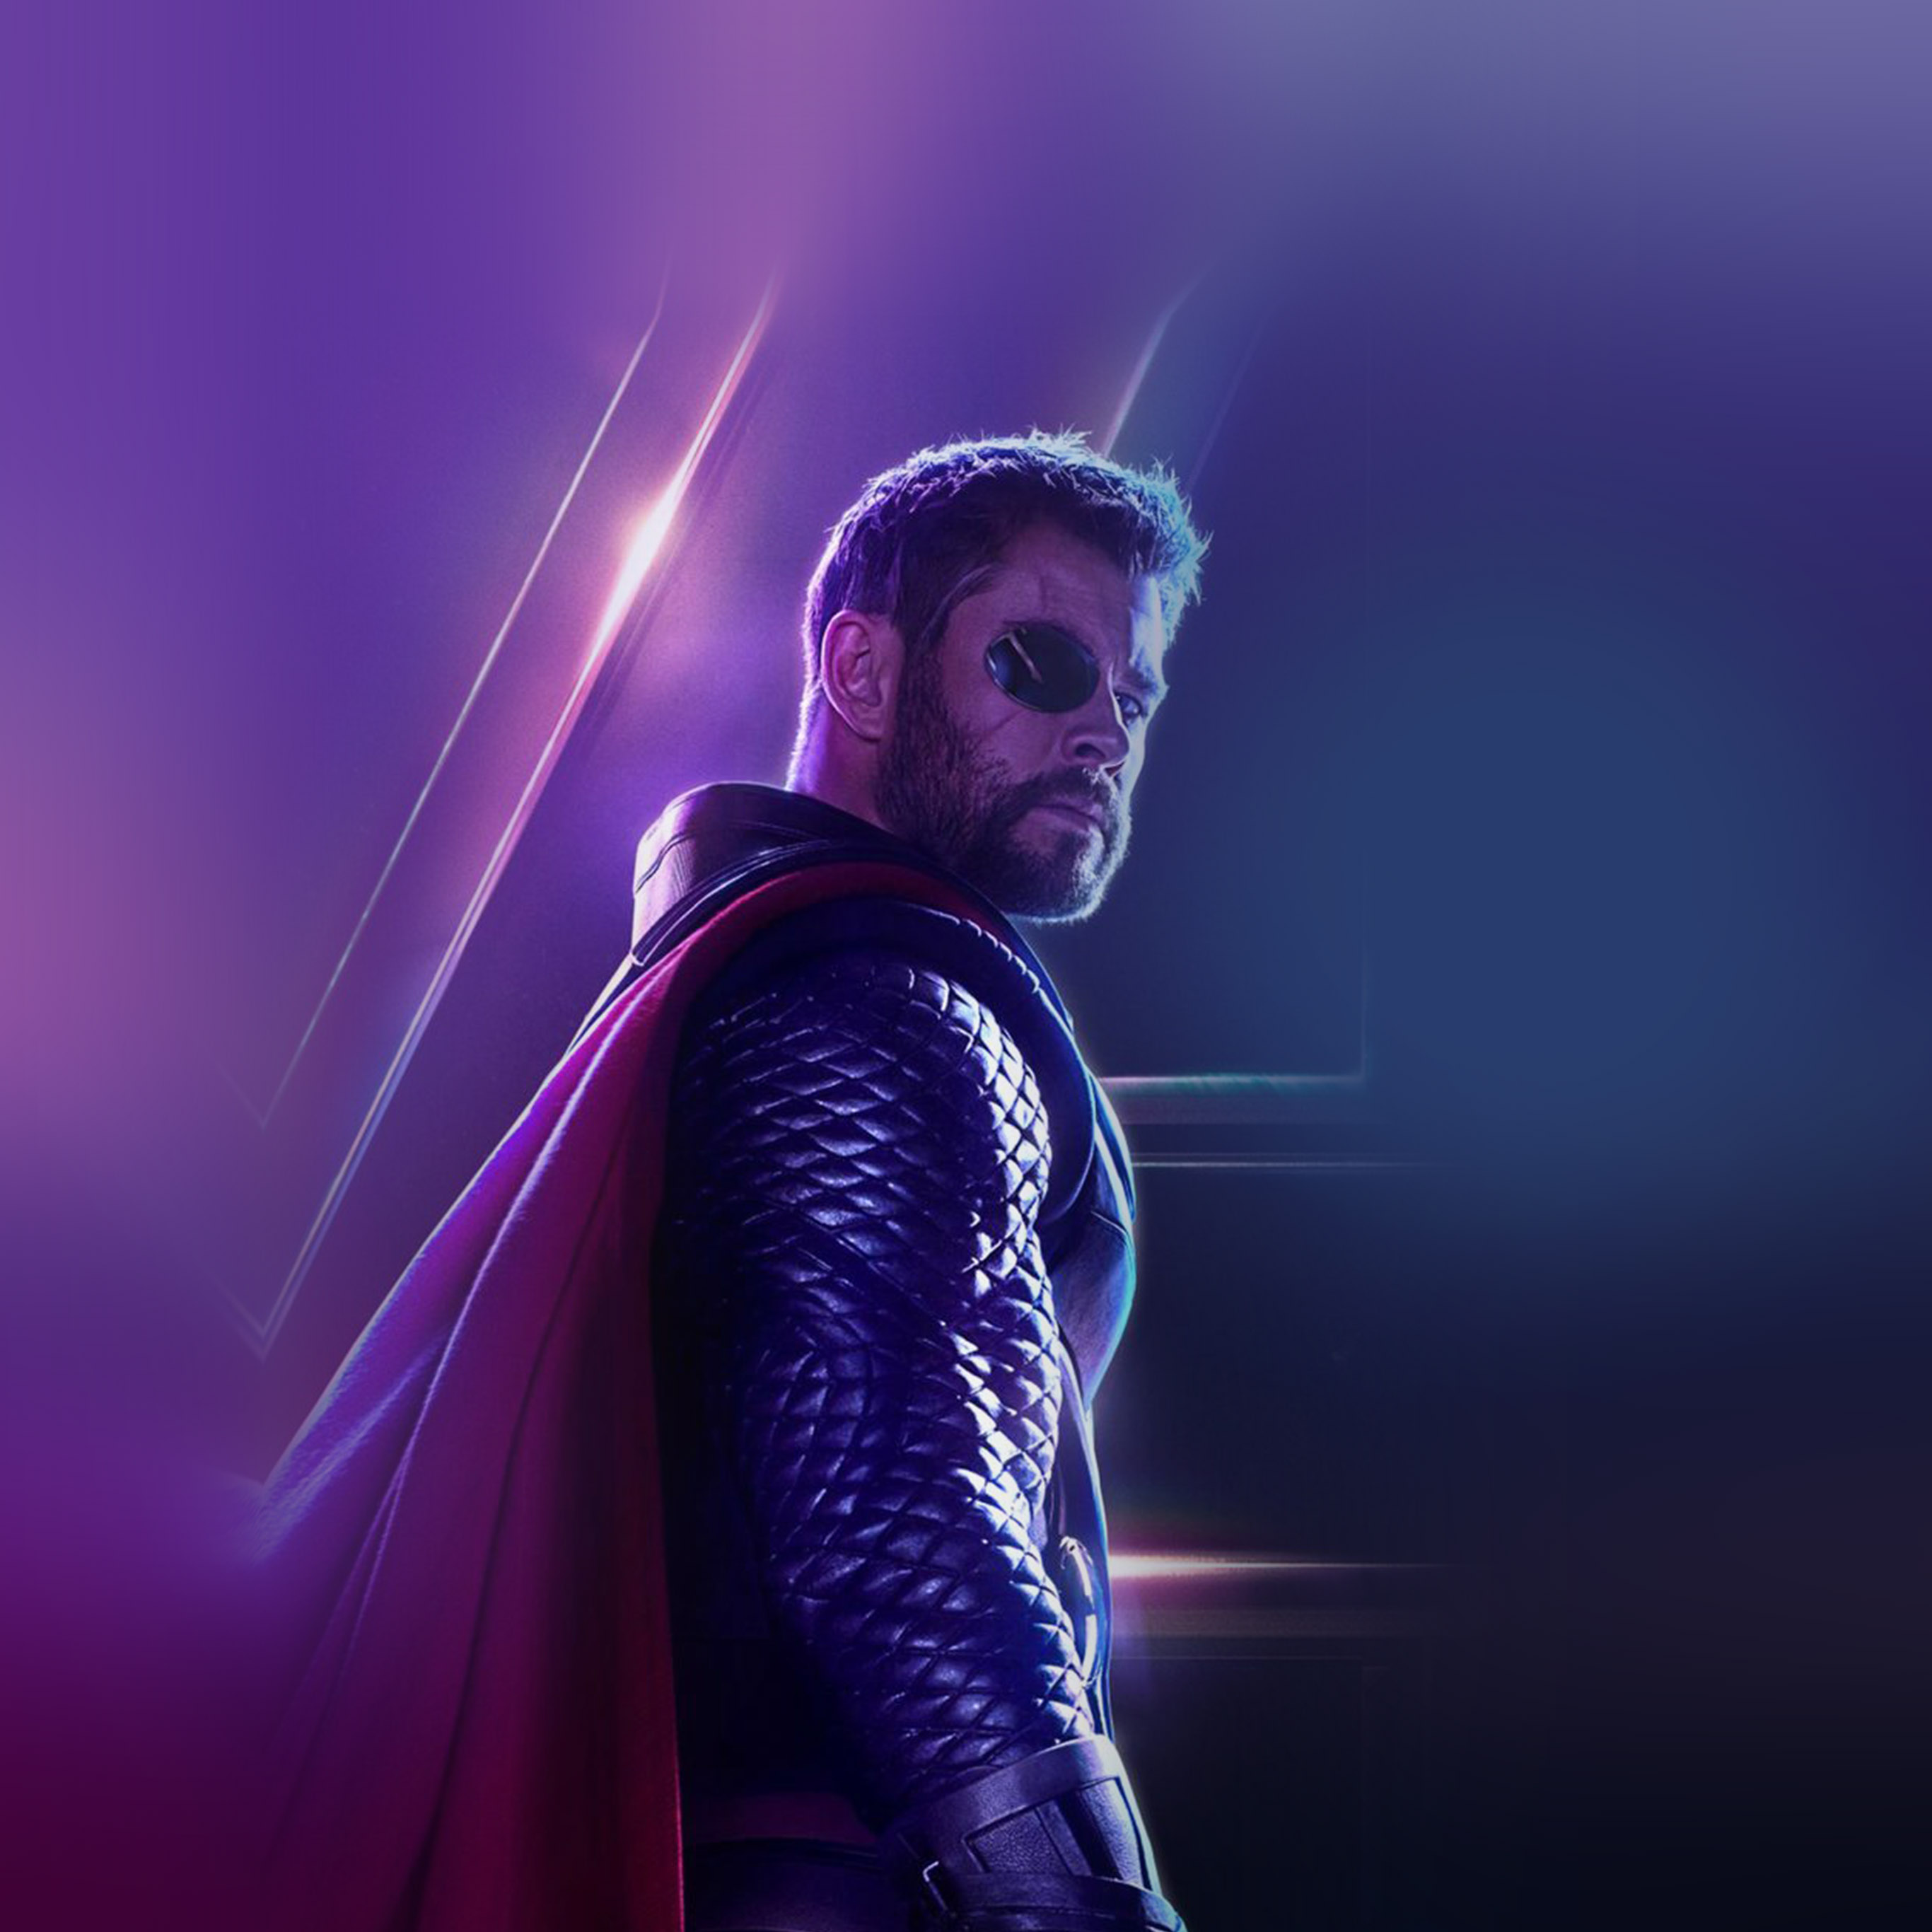 be94-thor-chris-avengers-hero-infinitywar-film-art-marvel ...